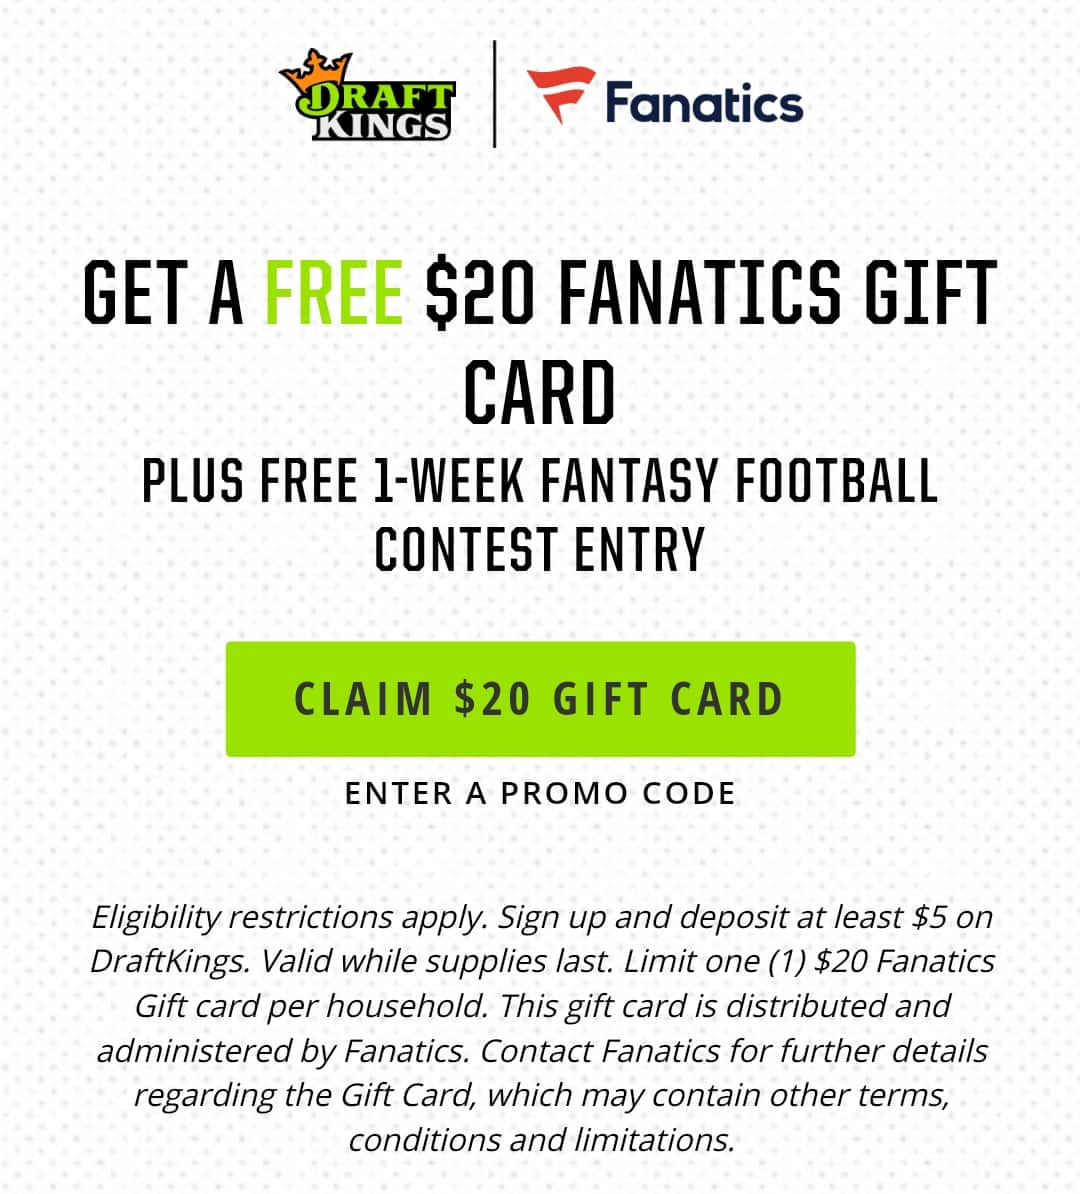 Deposit at least $5 on DraftKings and receive a $20 Fanatics Gift card